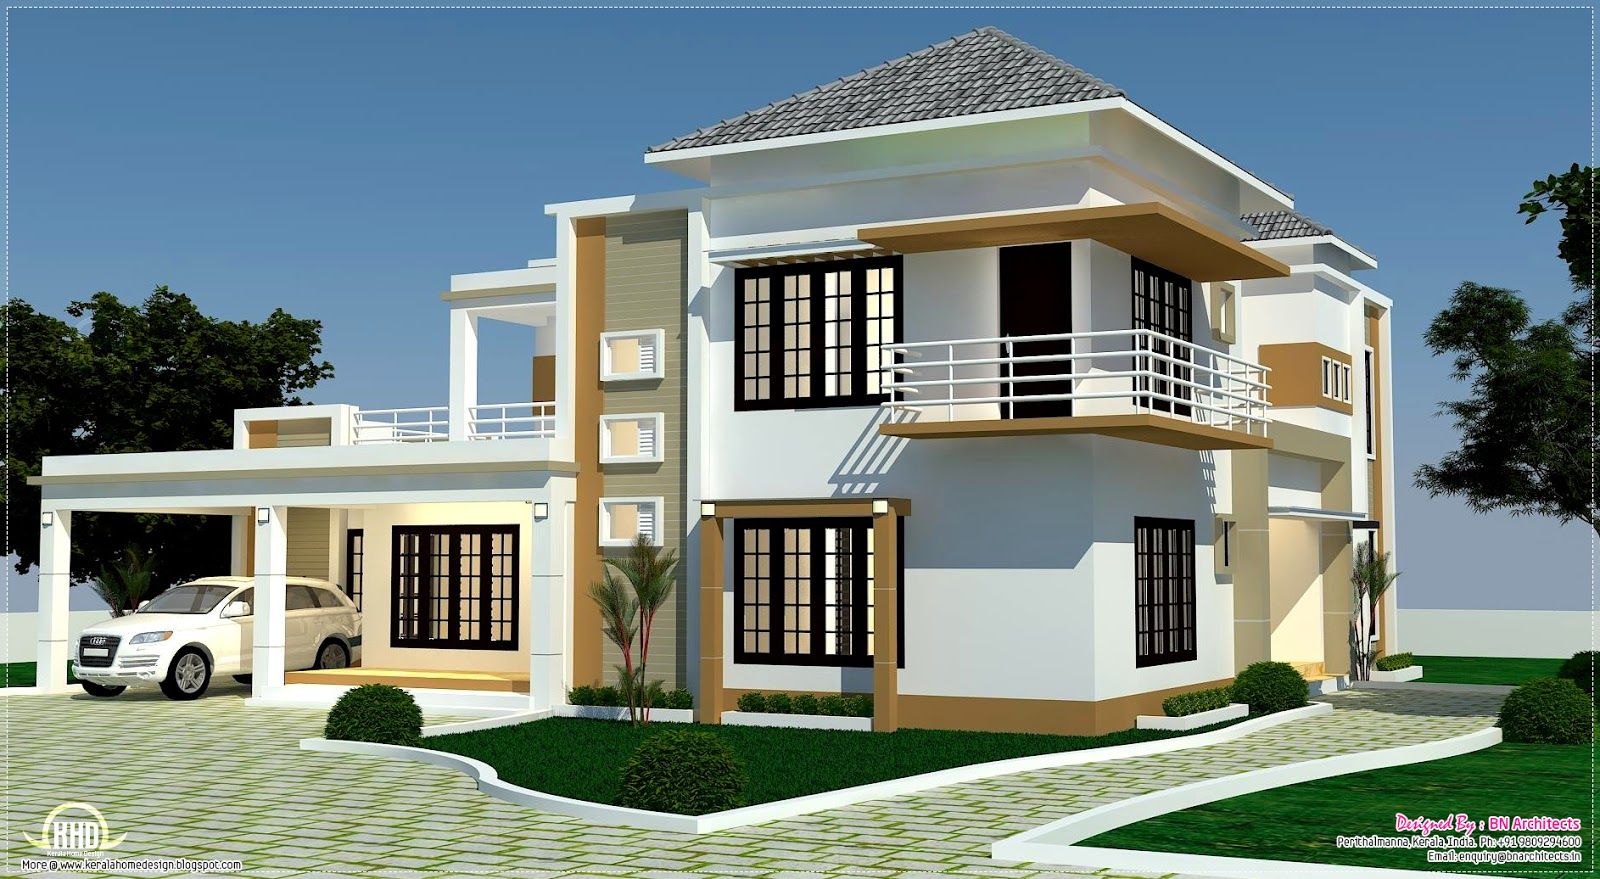 4bhk villa view 01